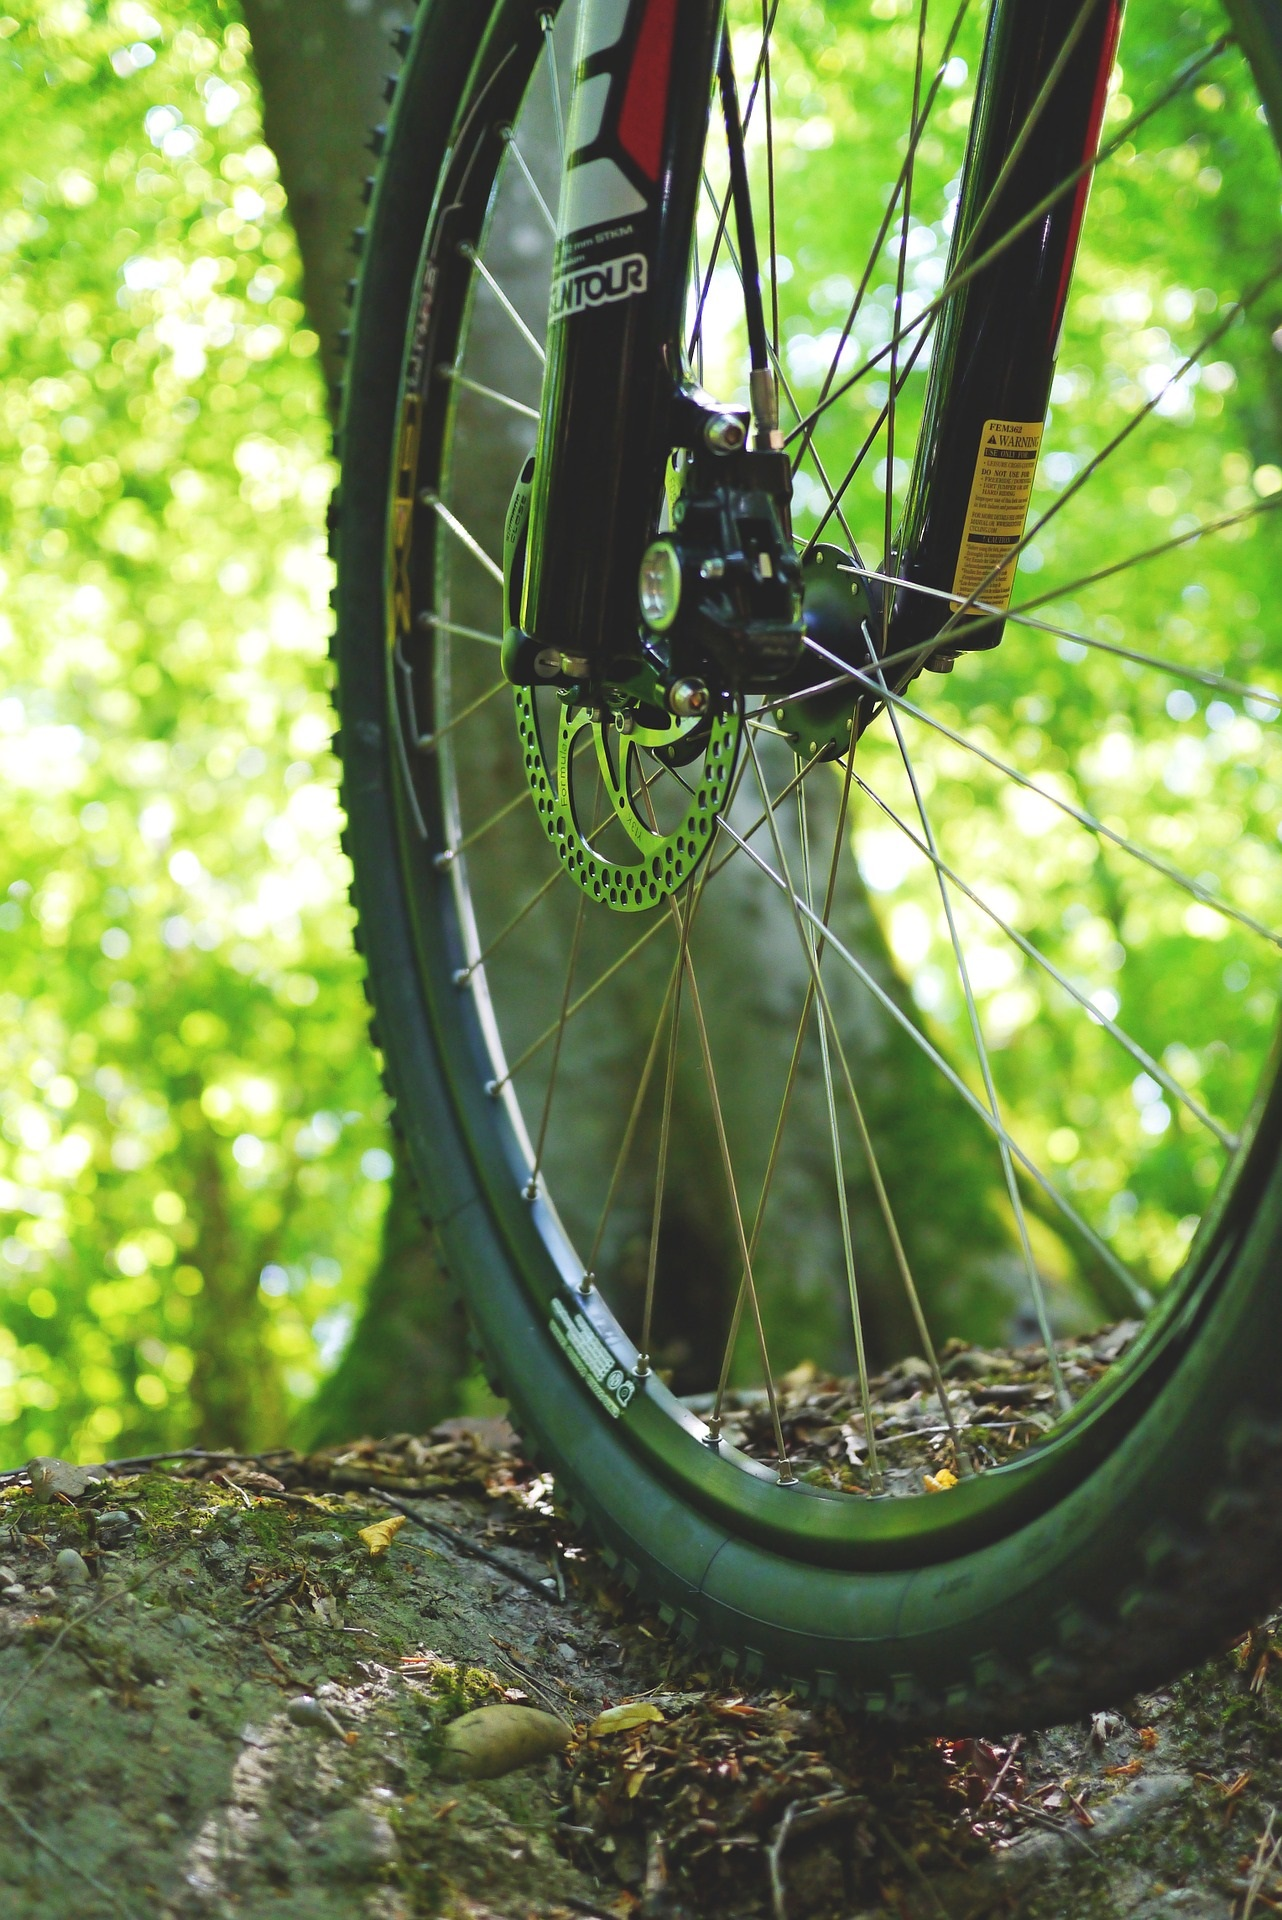 mountainbike cleaning